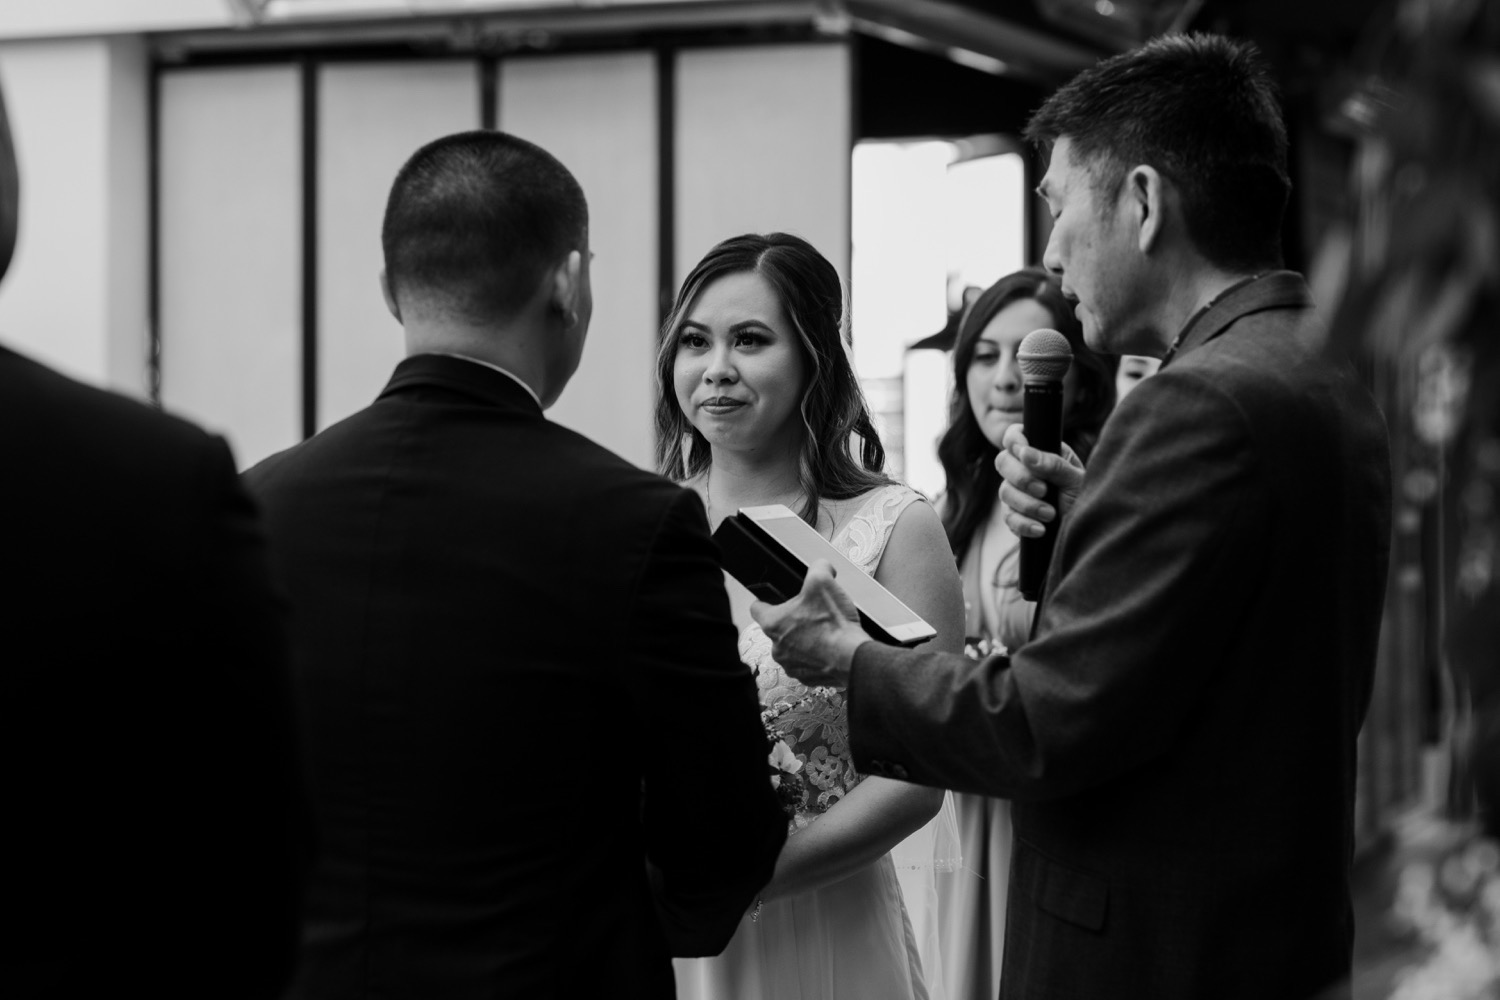 twenty-eight-irvine-wedding-california-traditional-vietnamese-tea-ceremony42.jpg